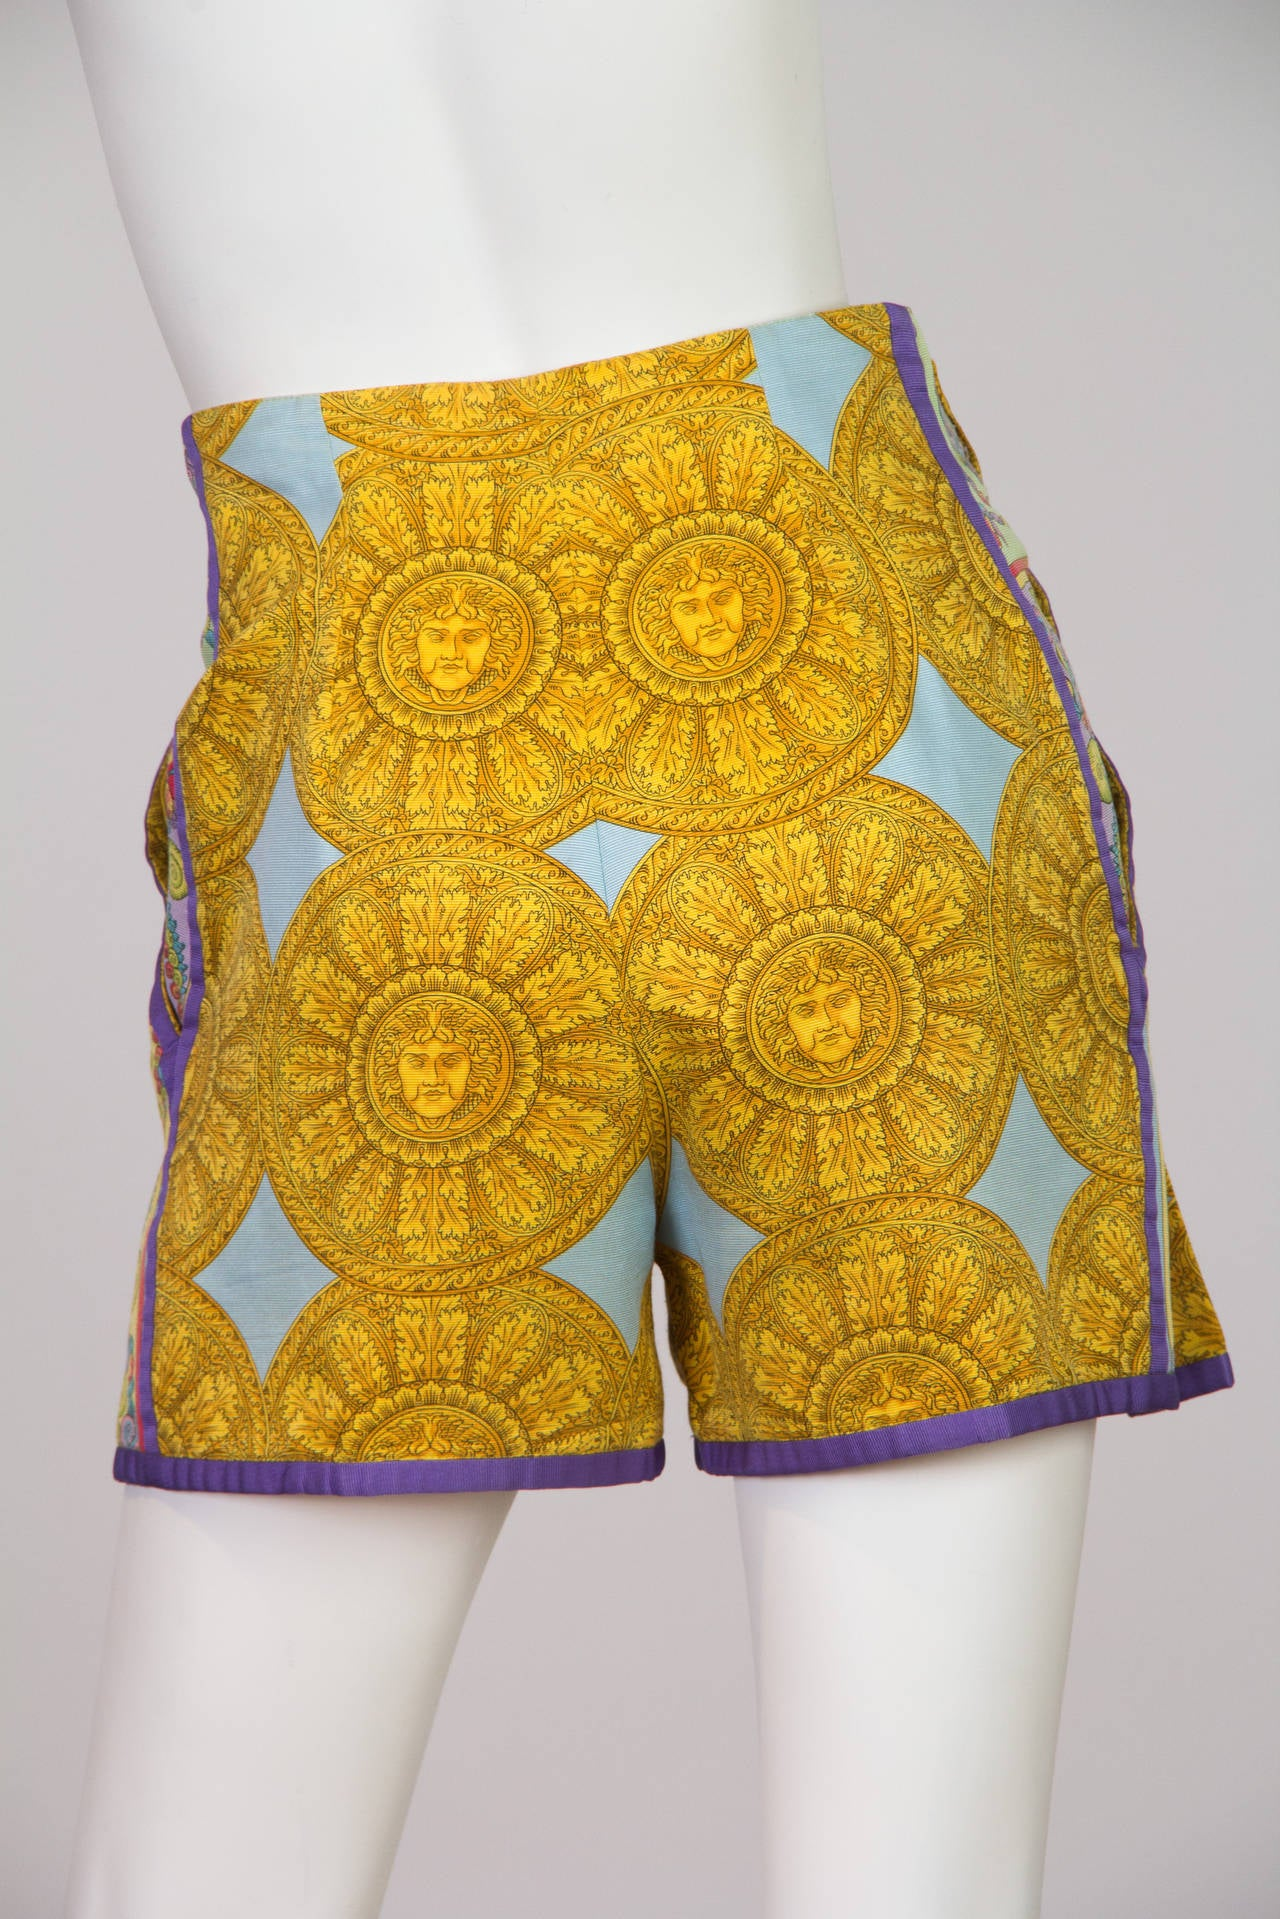 From the king of luxurious prints right from his landmark era we have these killer shorts from Gianni Versace. The motifs of the collection were shells and the sun,  both of which are represented here fully. Fab gold and silver medusa buttons add a